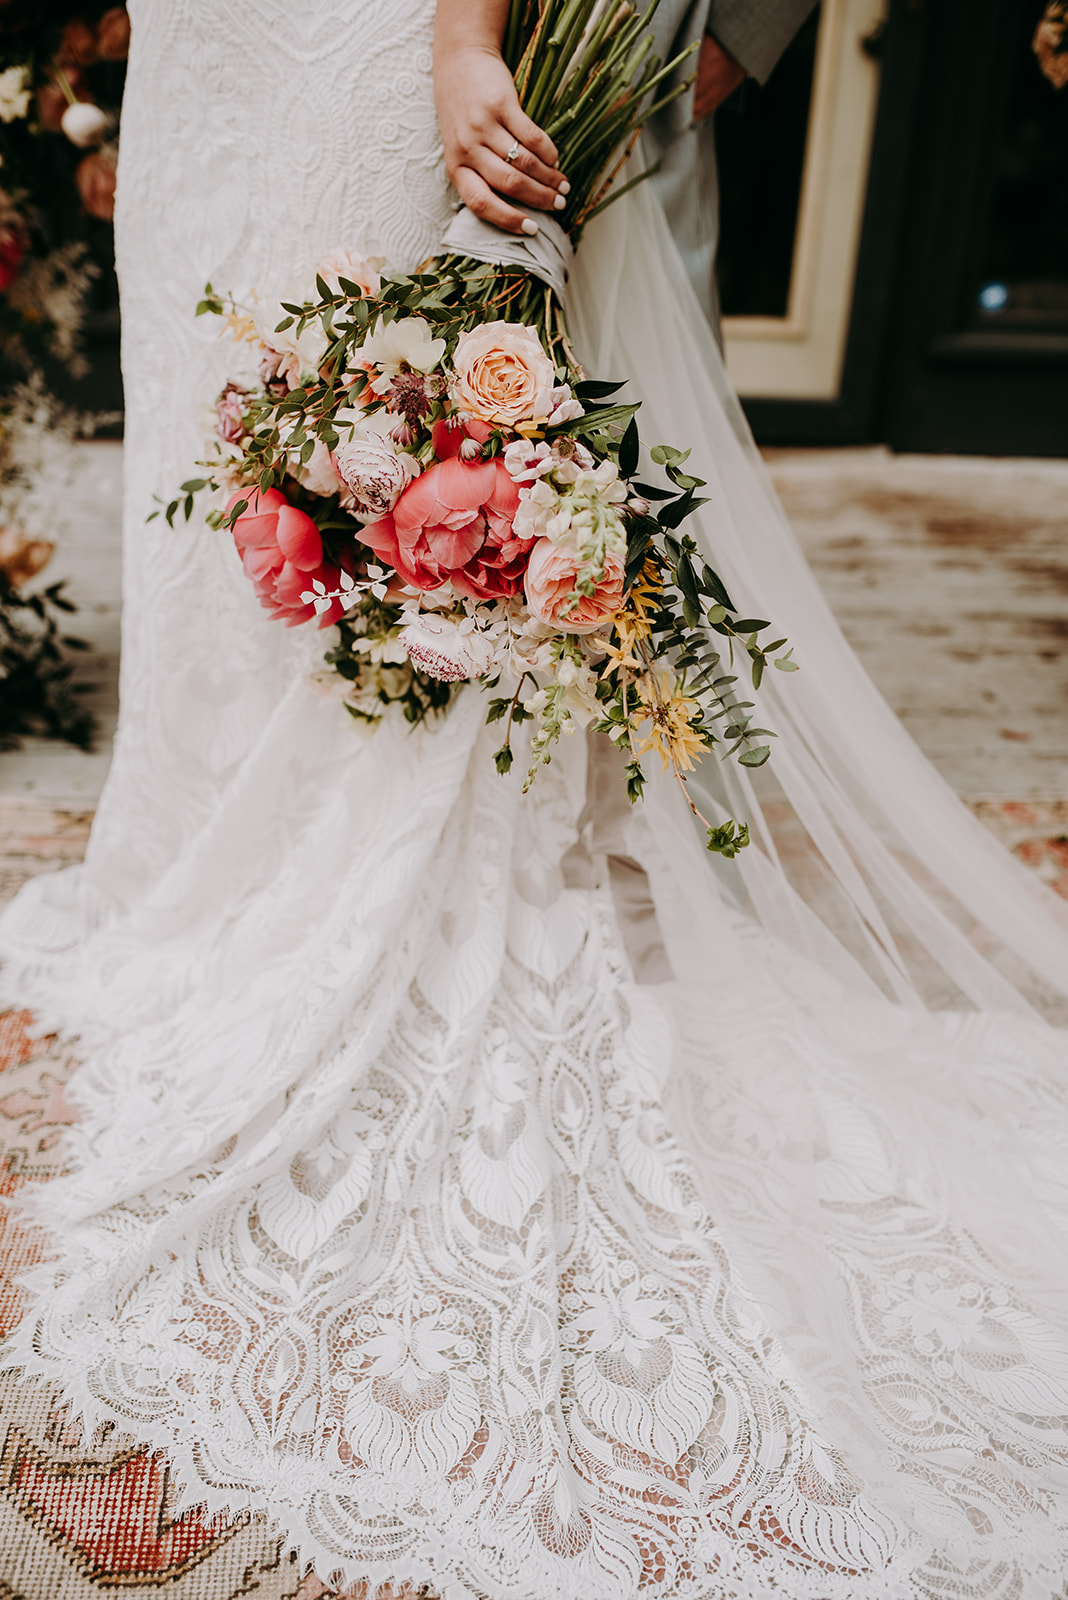 Bride Dress Flower Details.jpg